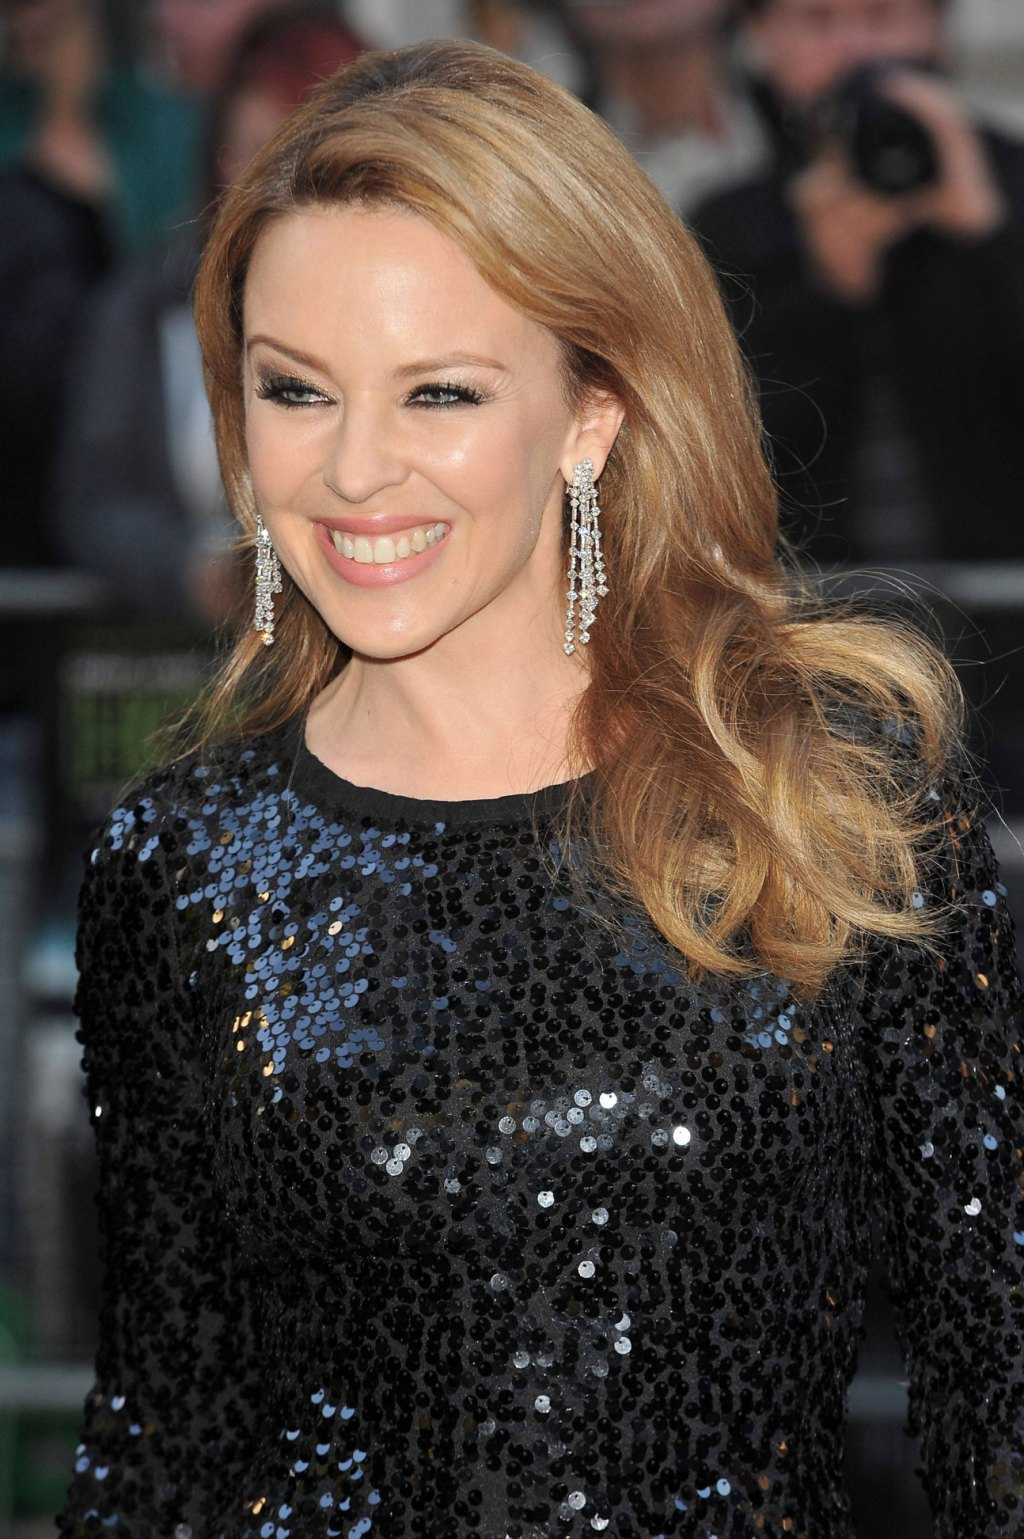 Kylie Minogue Fans, Time For A Dance Party - Four Unreleased Tracks Leaked Online!